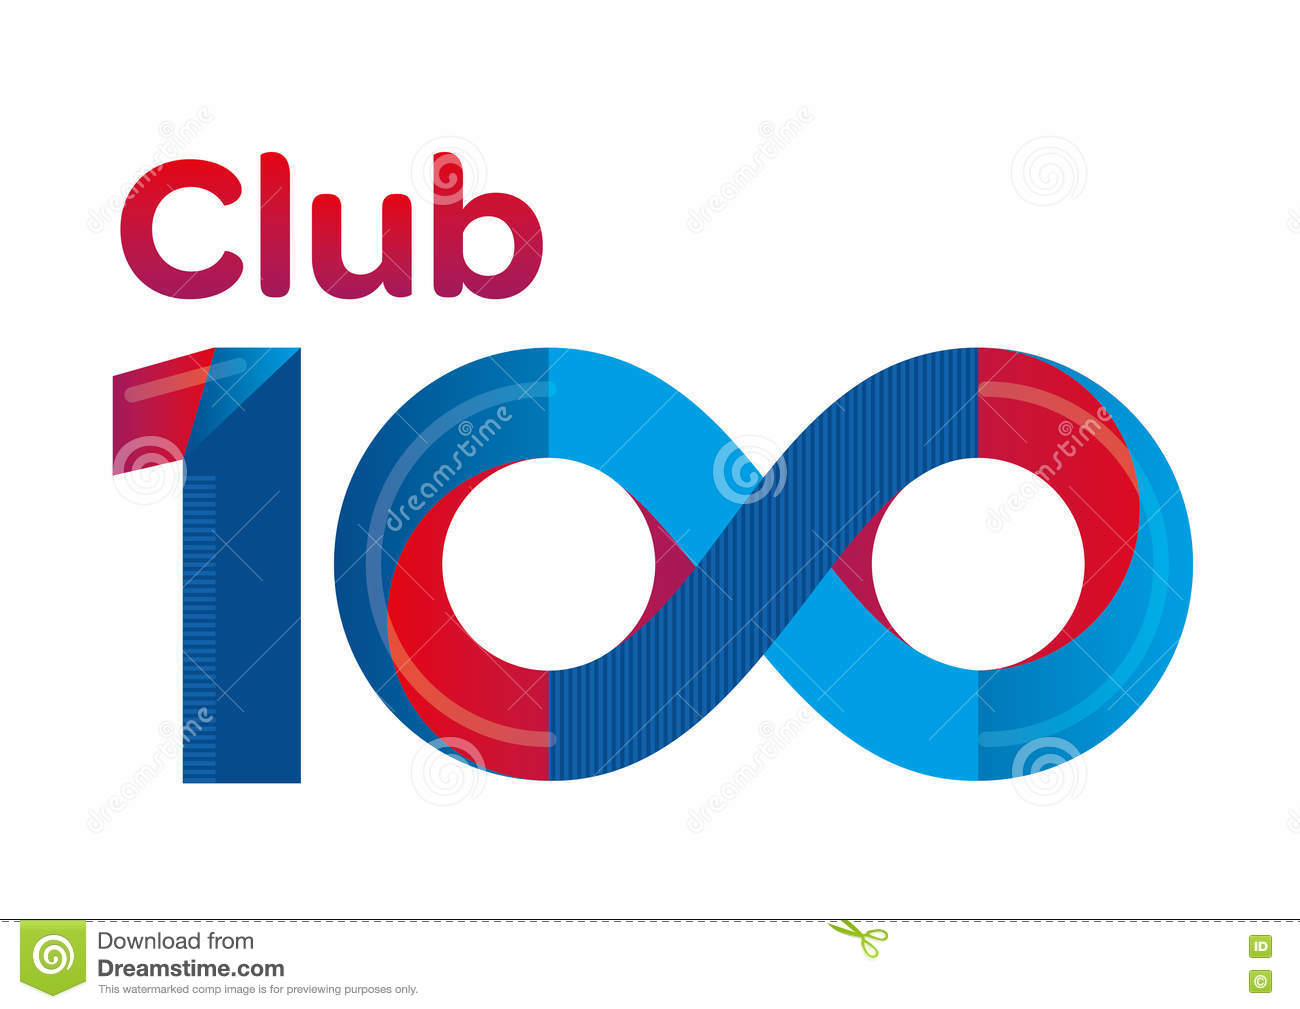 Club 100 logo typography stock illustration illustration of symbol club 100 logo typography buycottarizona Image collections